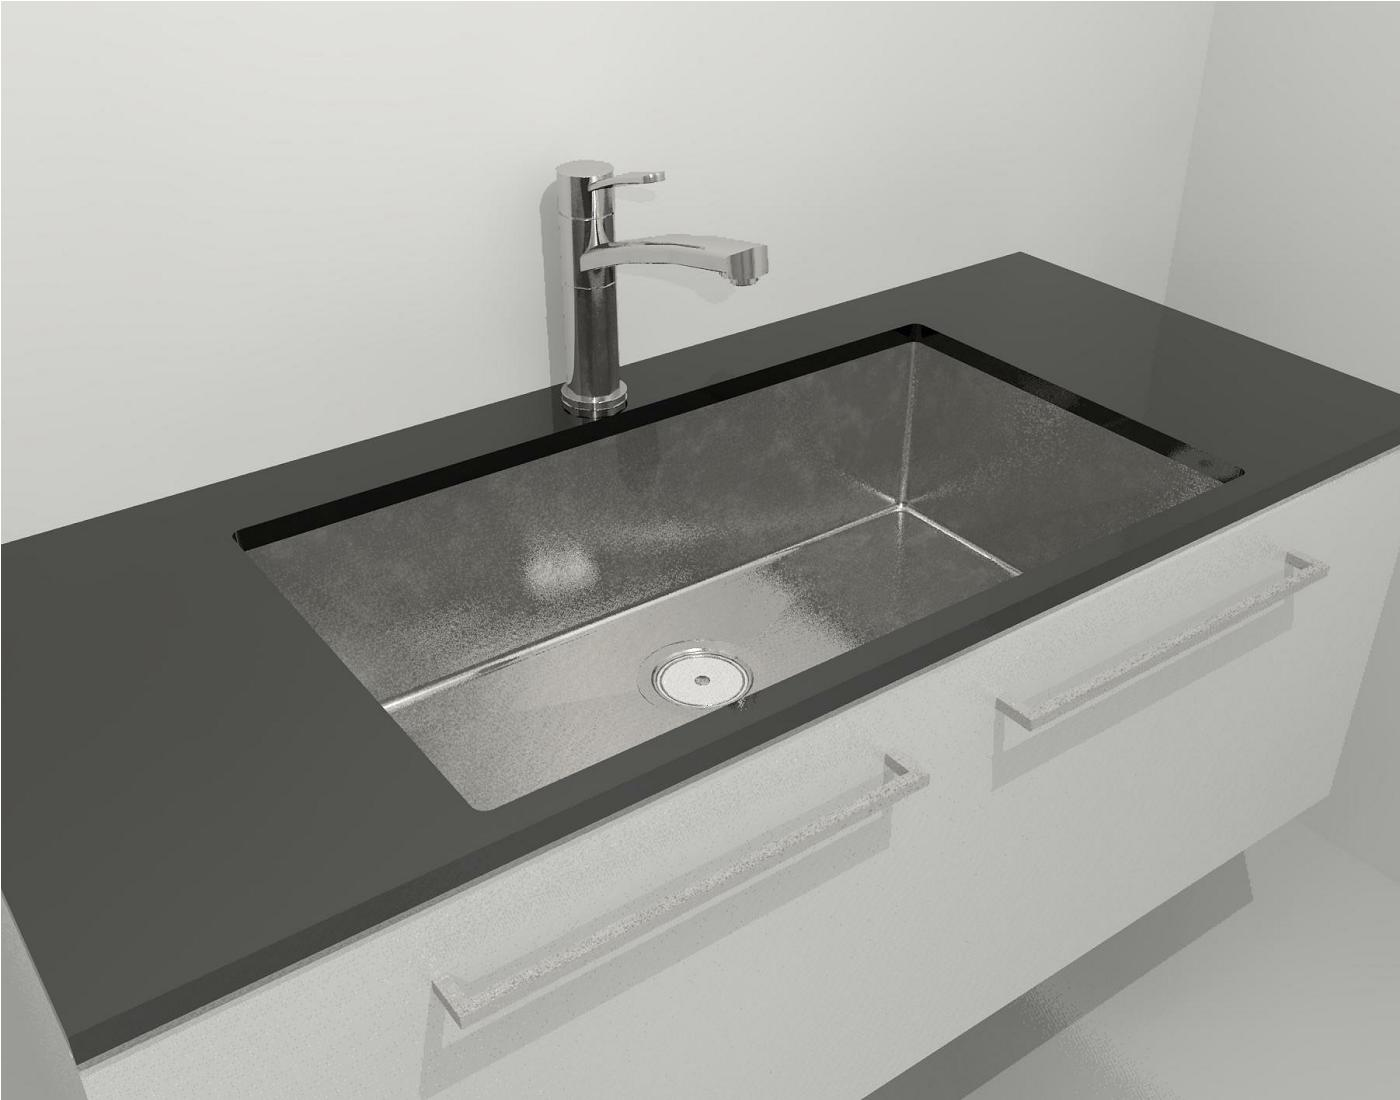 ... CAD files for Clark Prism Single Large Bowl Undermount/Overmount Sink